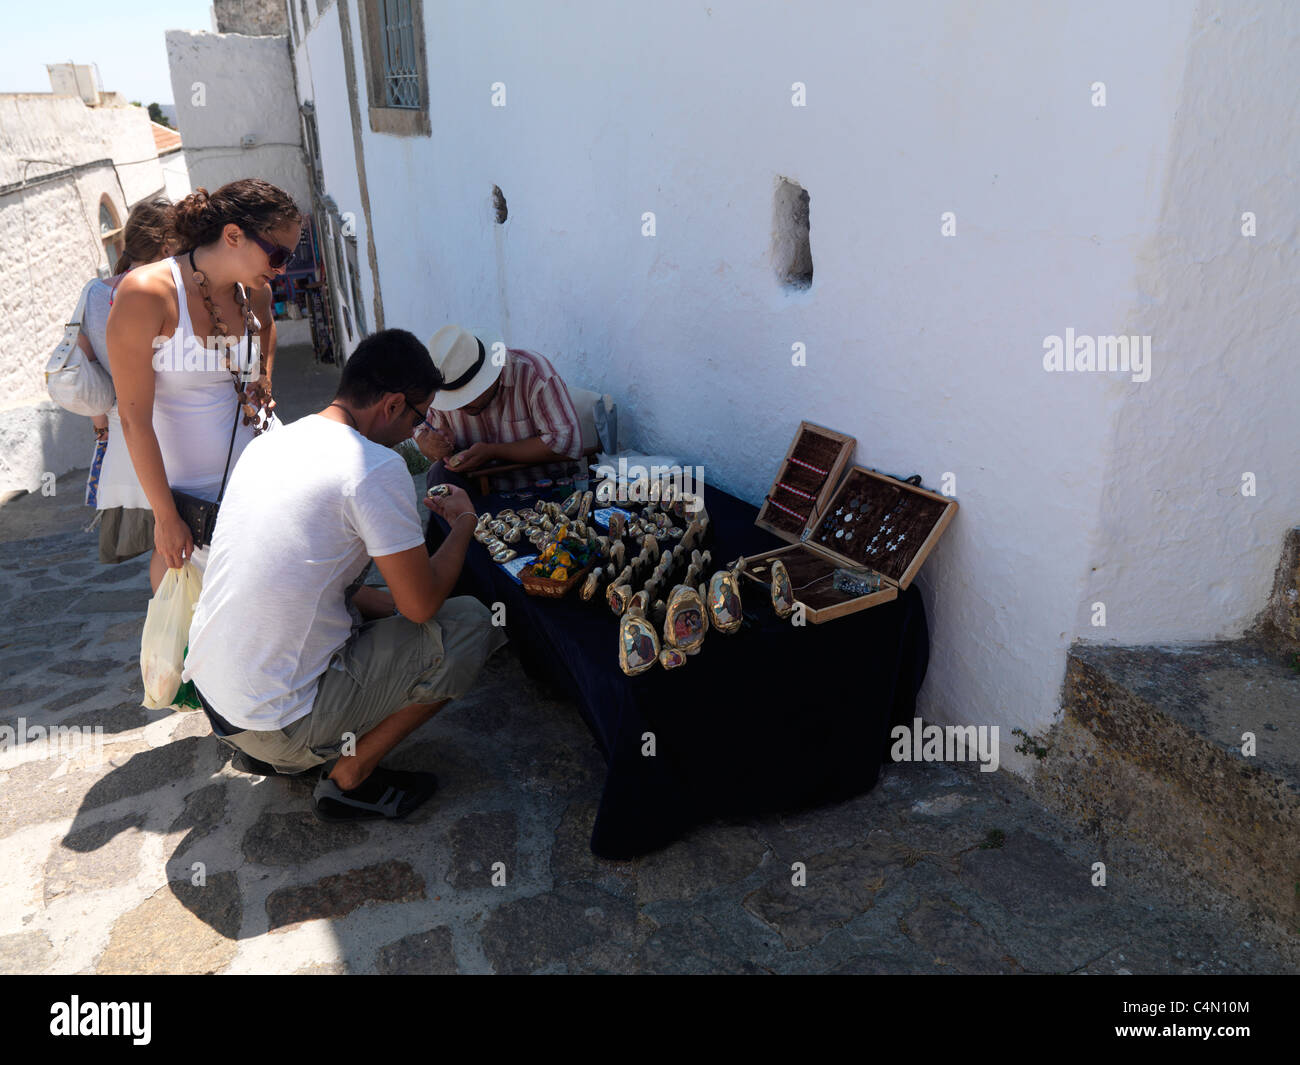 Chora Patmos Greece People Looking At Stall Selling Religious Artefacts And Jewellery In Narrow Street - Stock Image